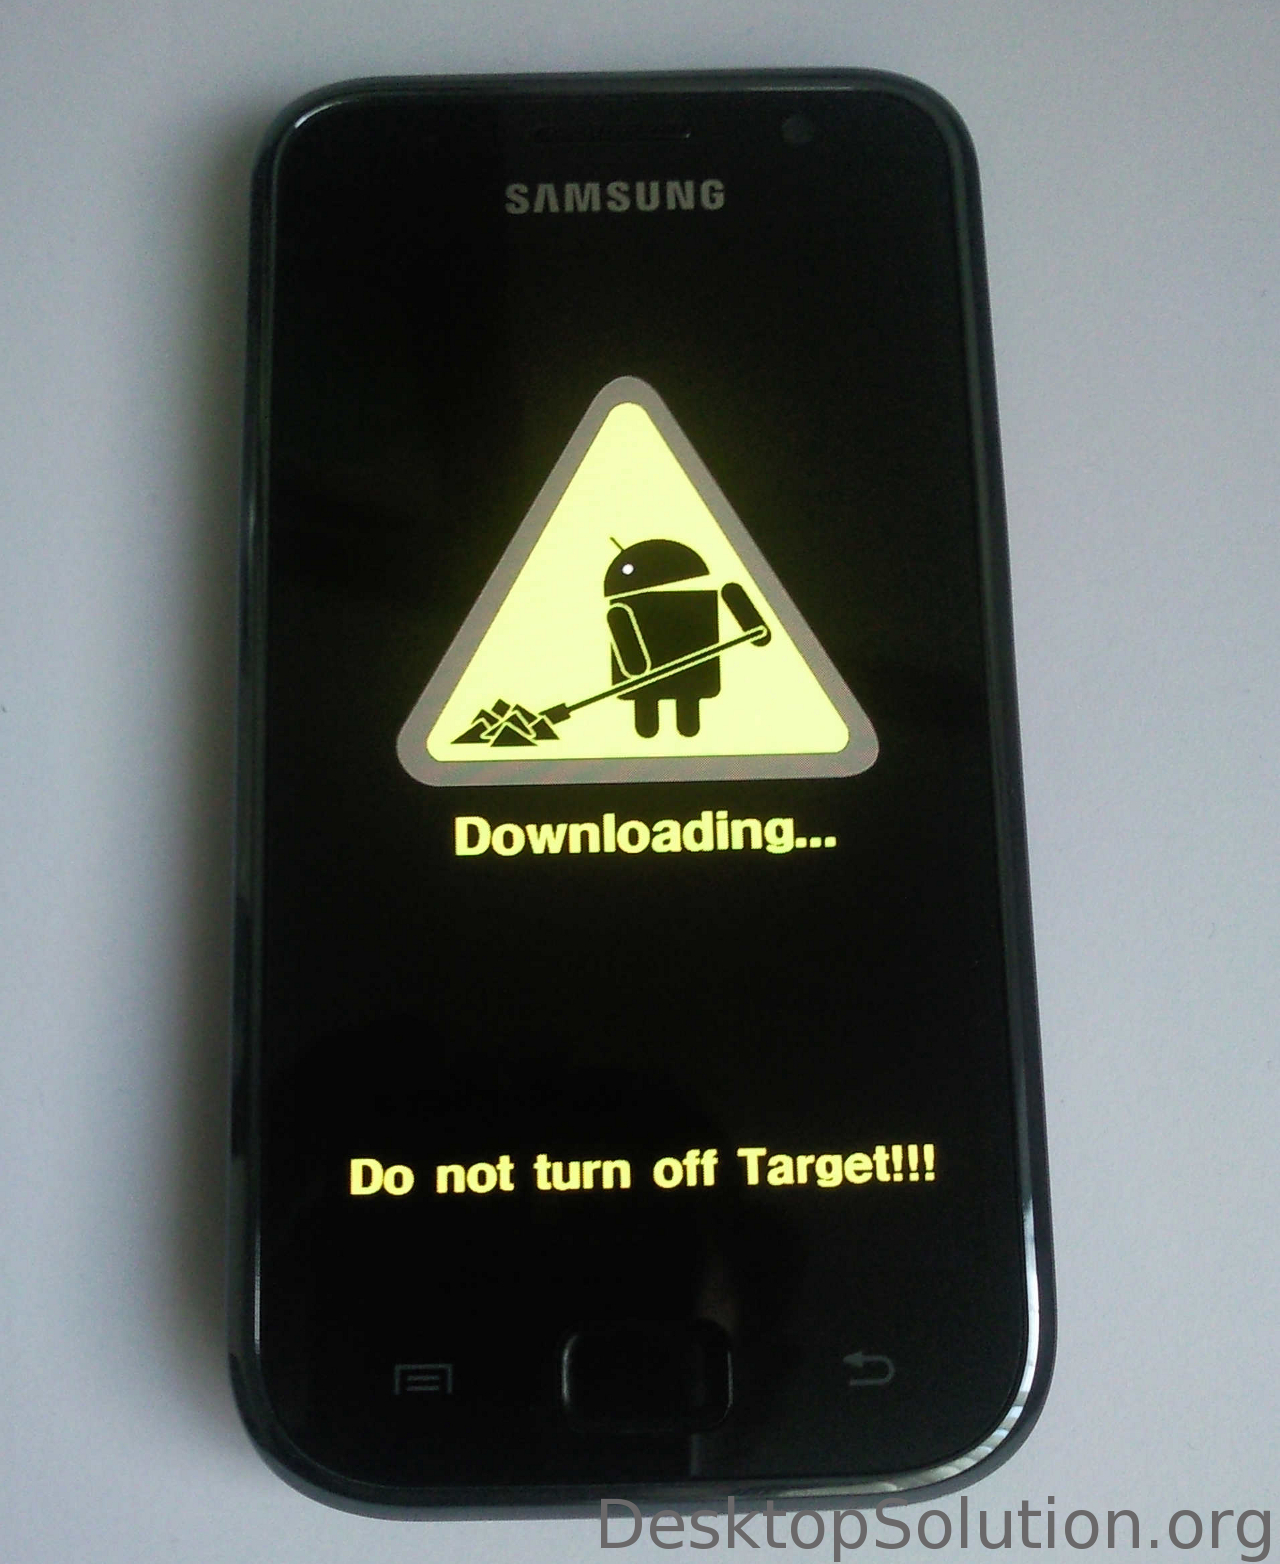 Samsung Galaxy S (GT-i9000) - Download mode